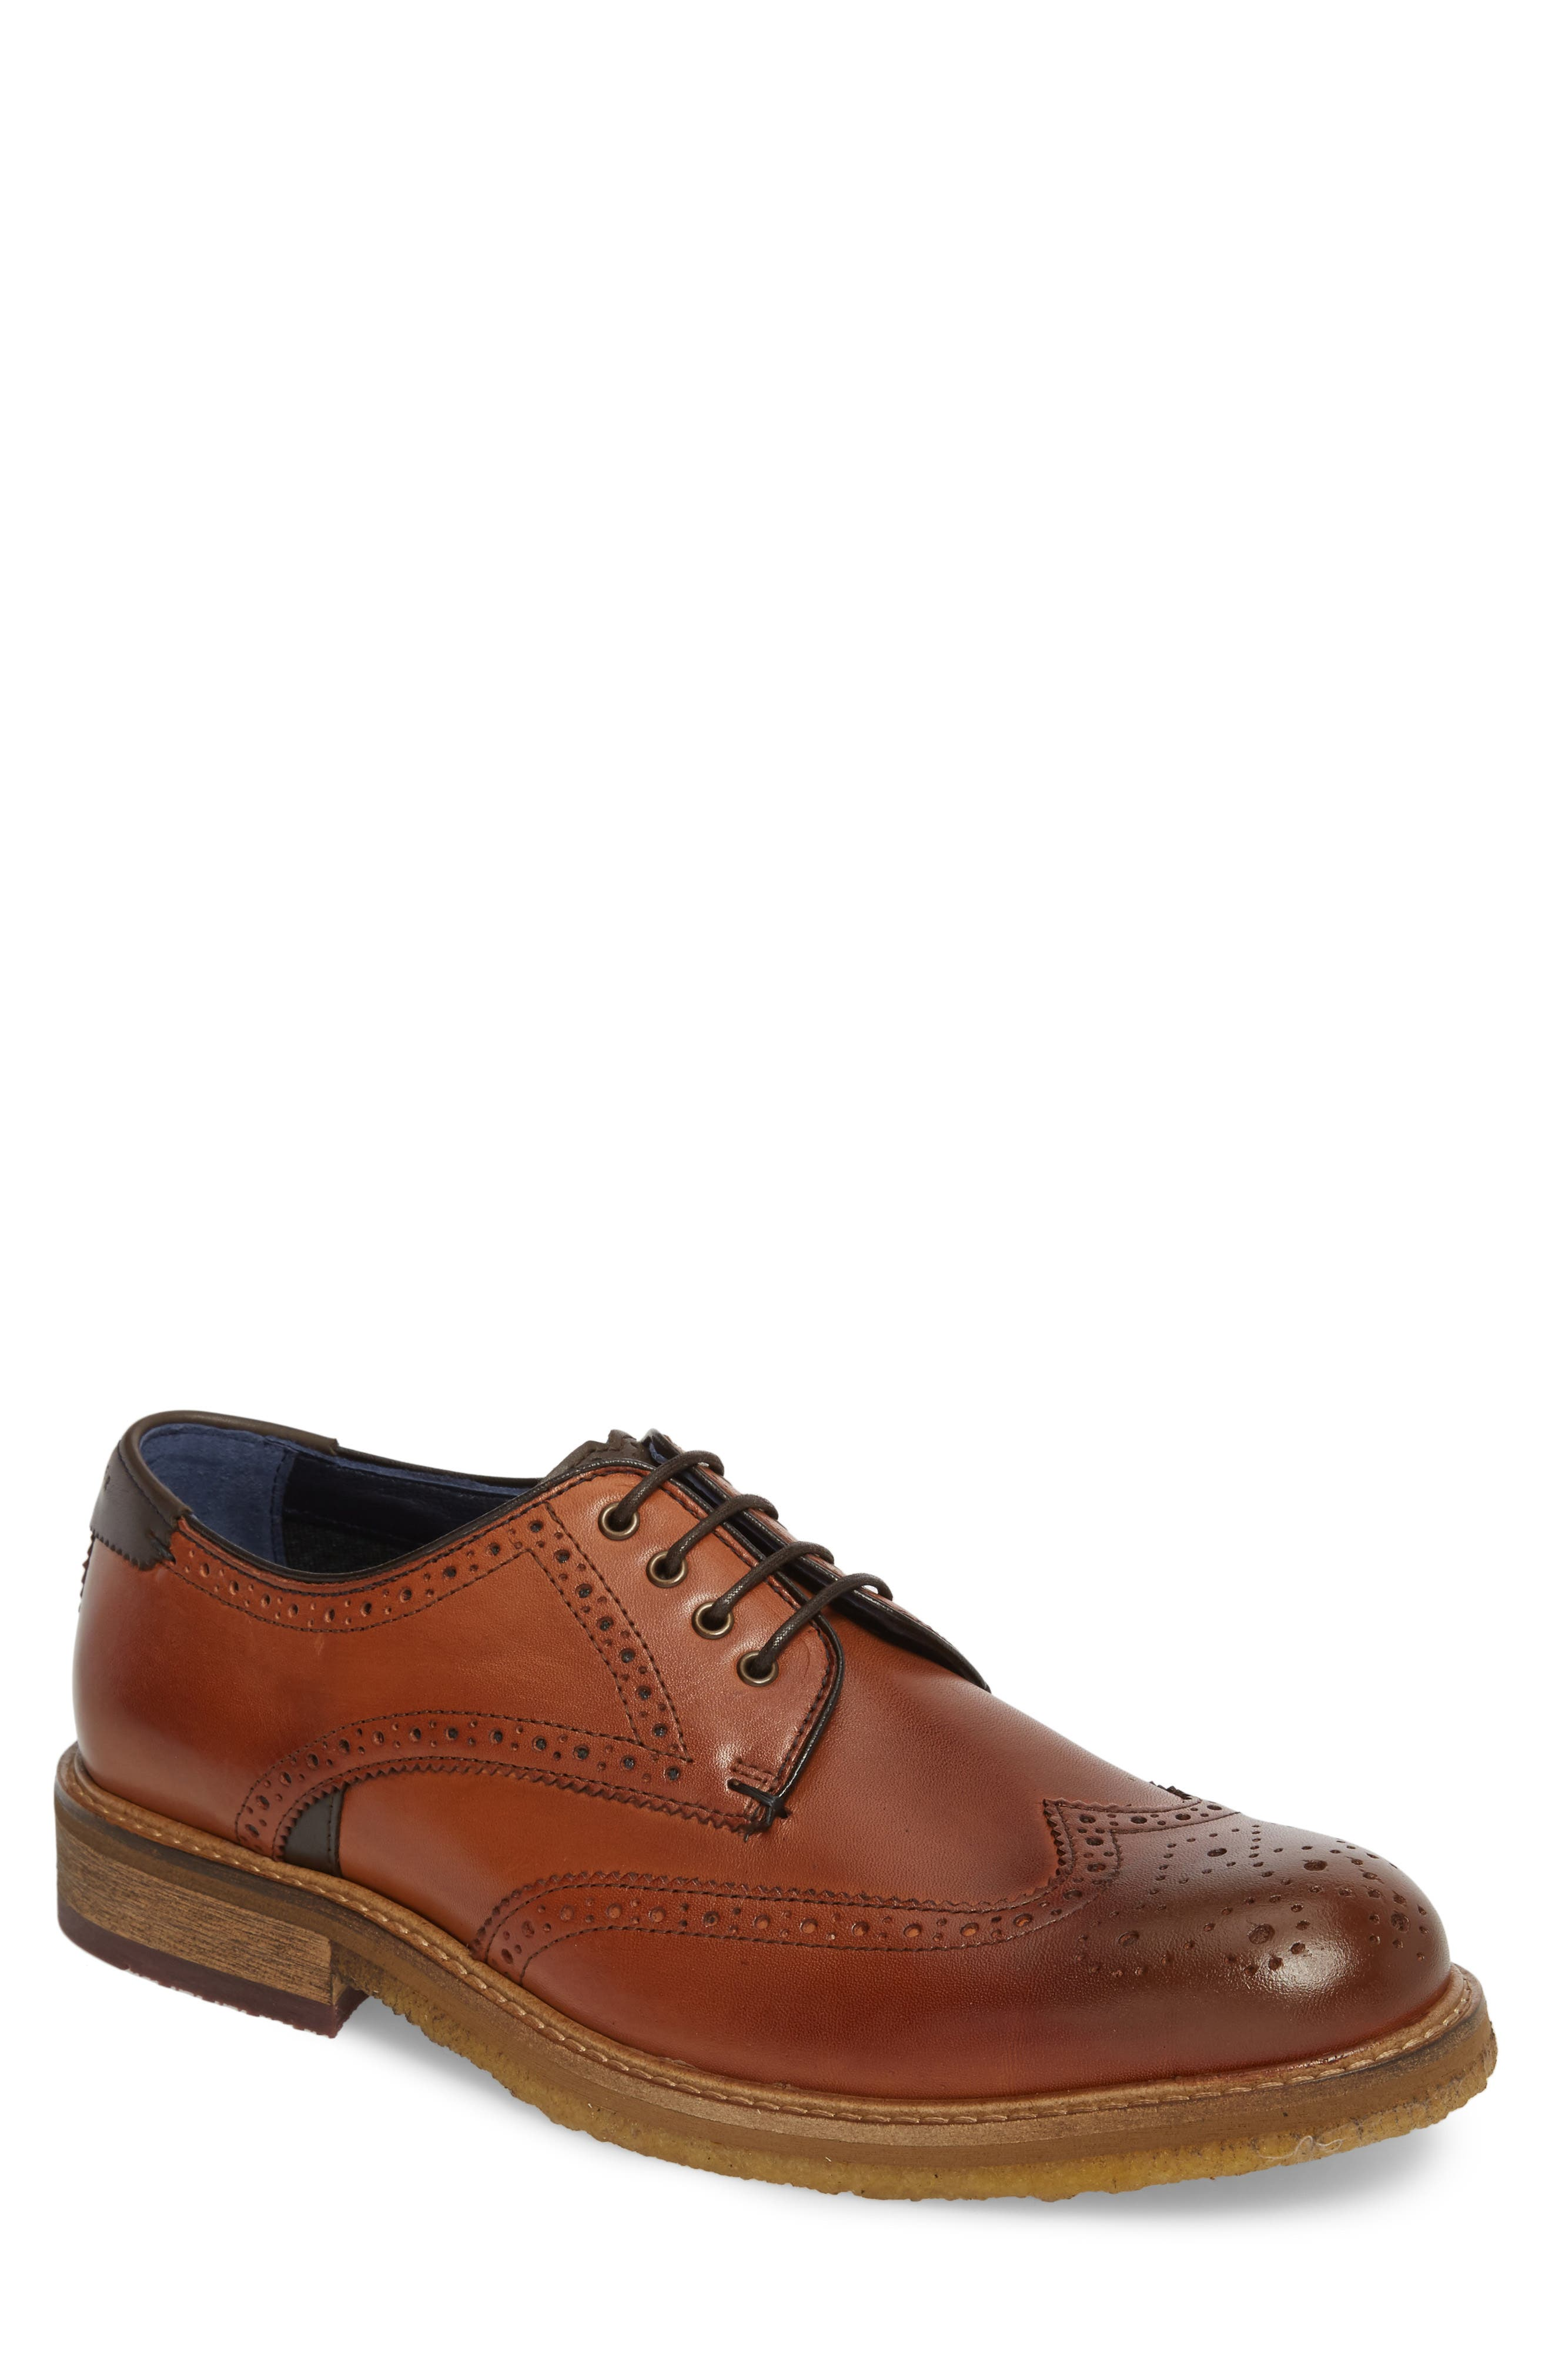 Prycce Wingtip Derby,                         Main,                         color, Tan Leather